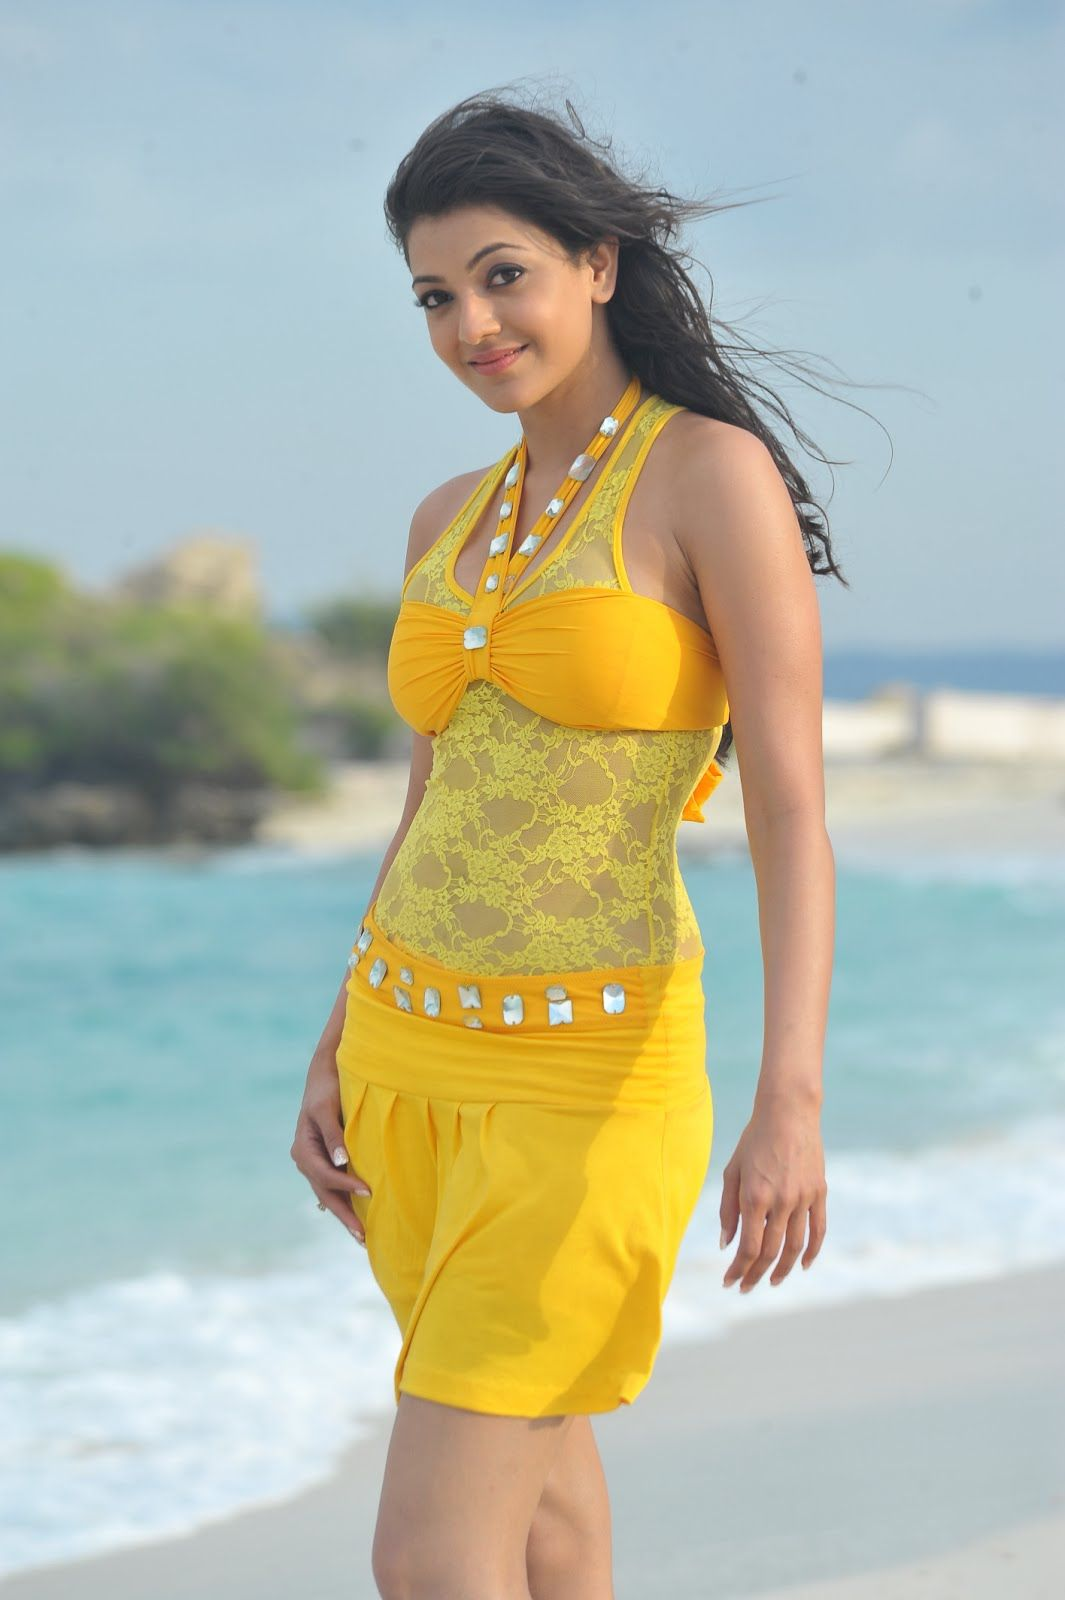 kajal-aggarwal-movies Kajal Aggarwal 21+ Bikini Picture, Scorching Attractive Swimsuit Picture Picture Age Peak Wiki